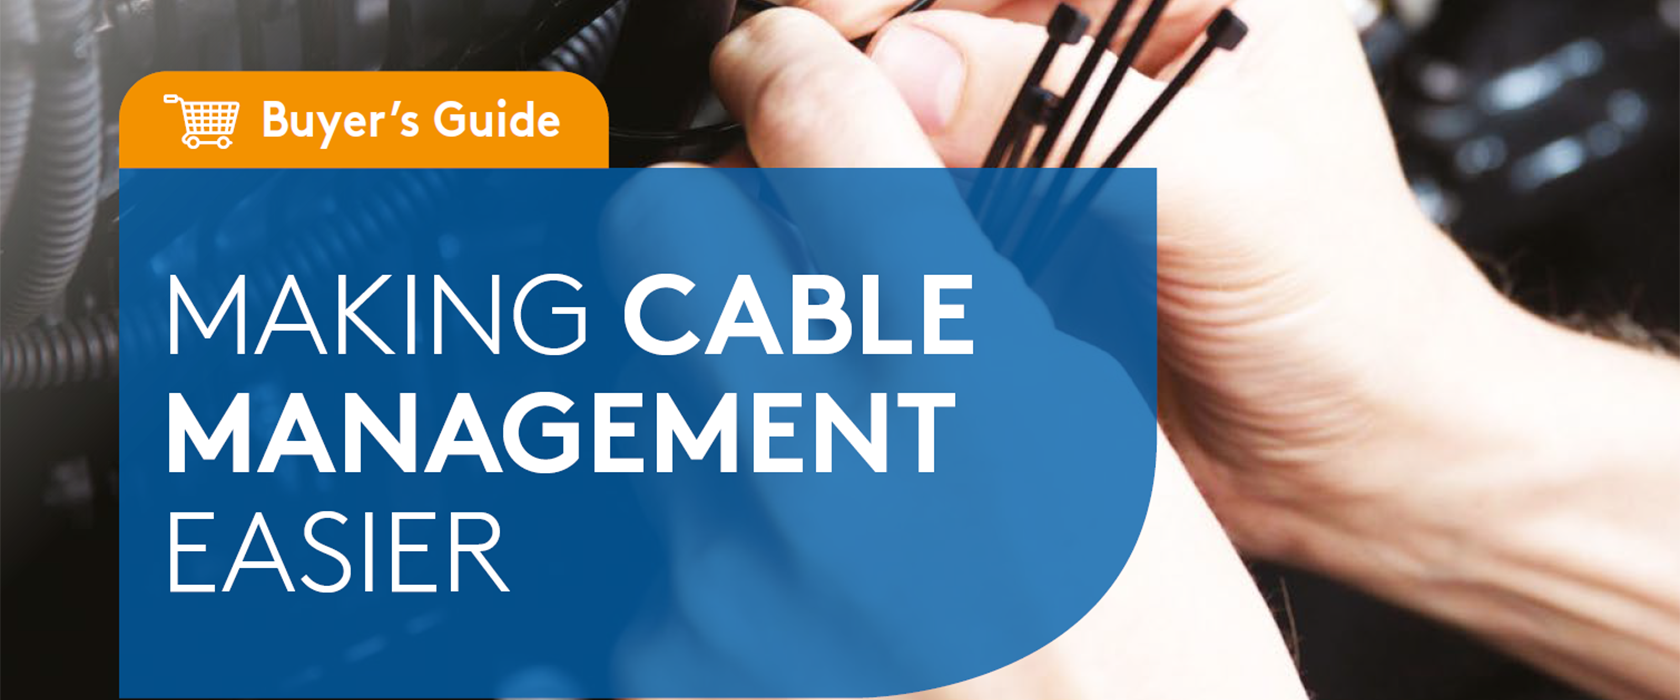 Cable management buyer's guide heading